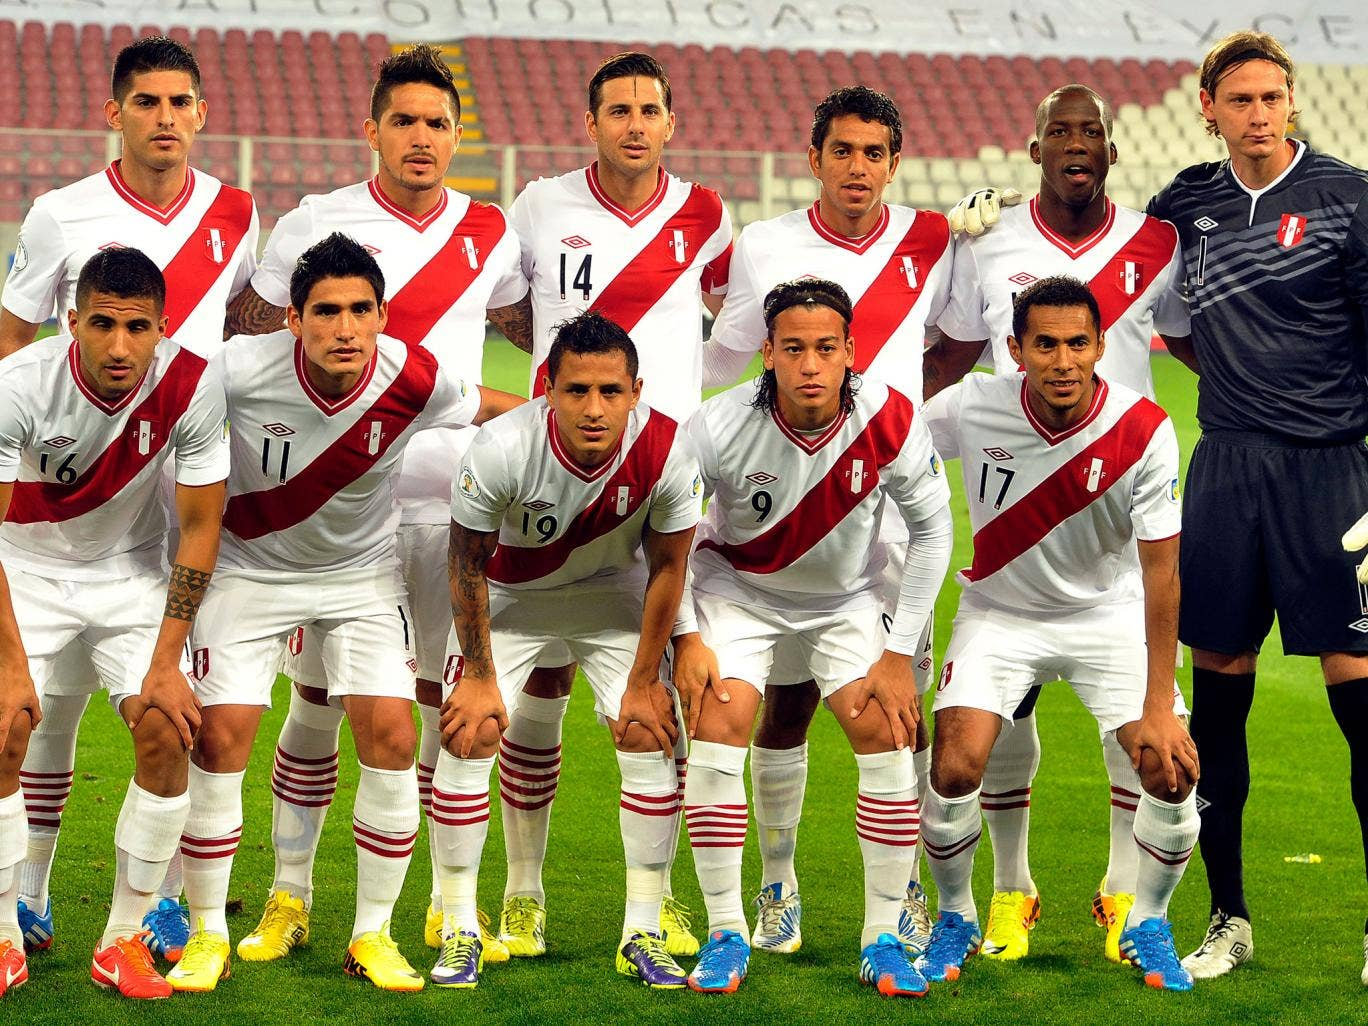 The Peru team pose for a picture prior to a World Cup qualifier during their failed attempt to qualify for the tournament in Brazil